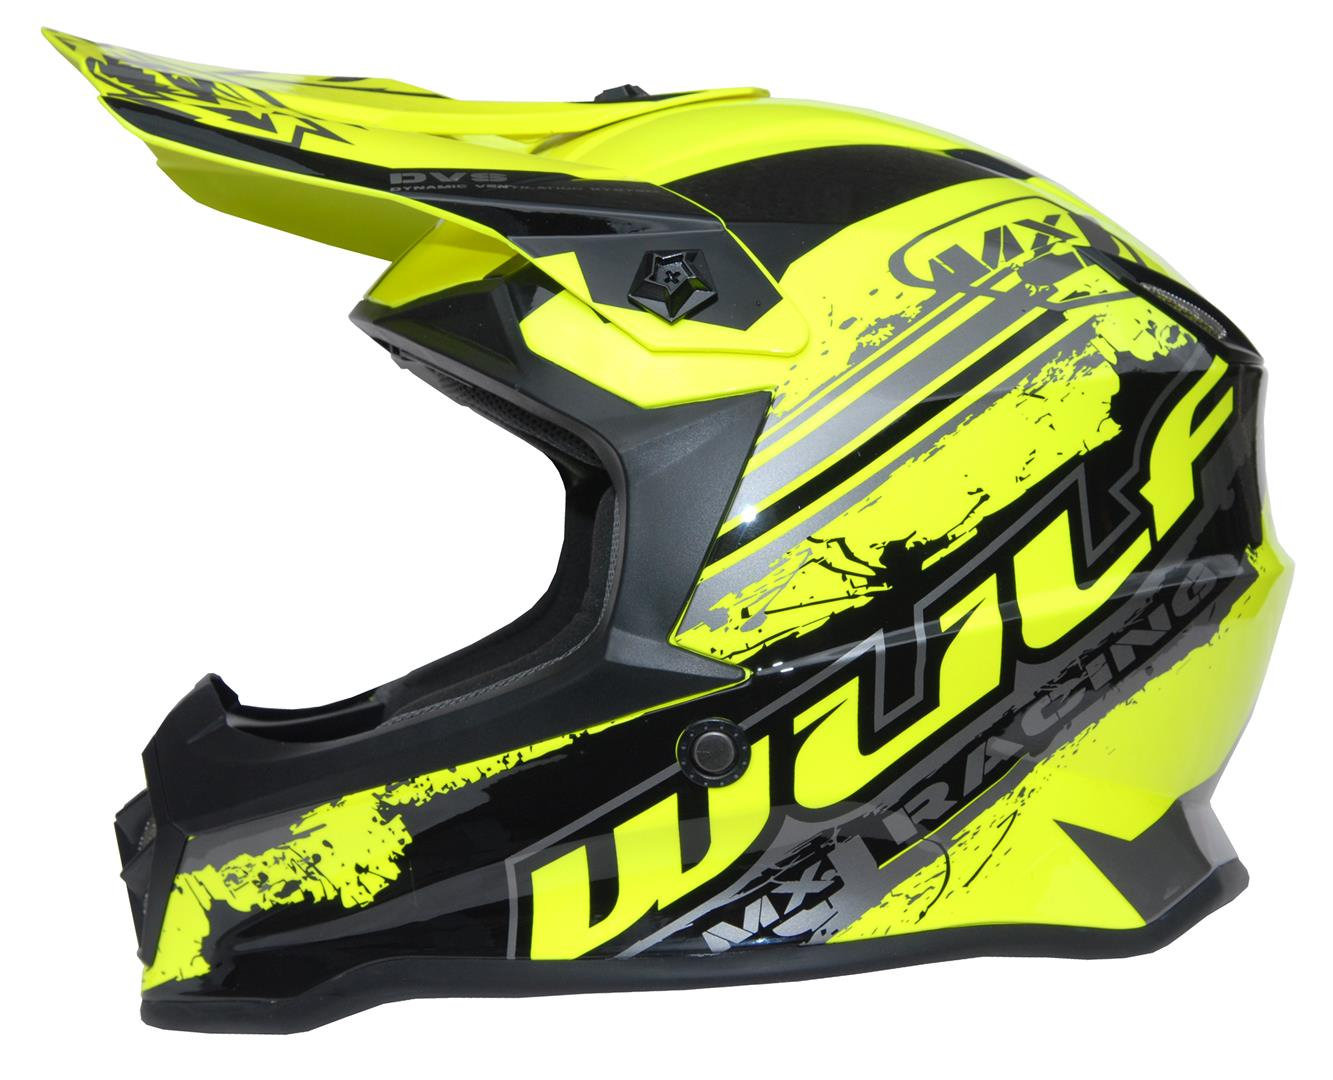 New 2020 Wulfsport Kids Off Road Pro Helmet - Yellow